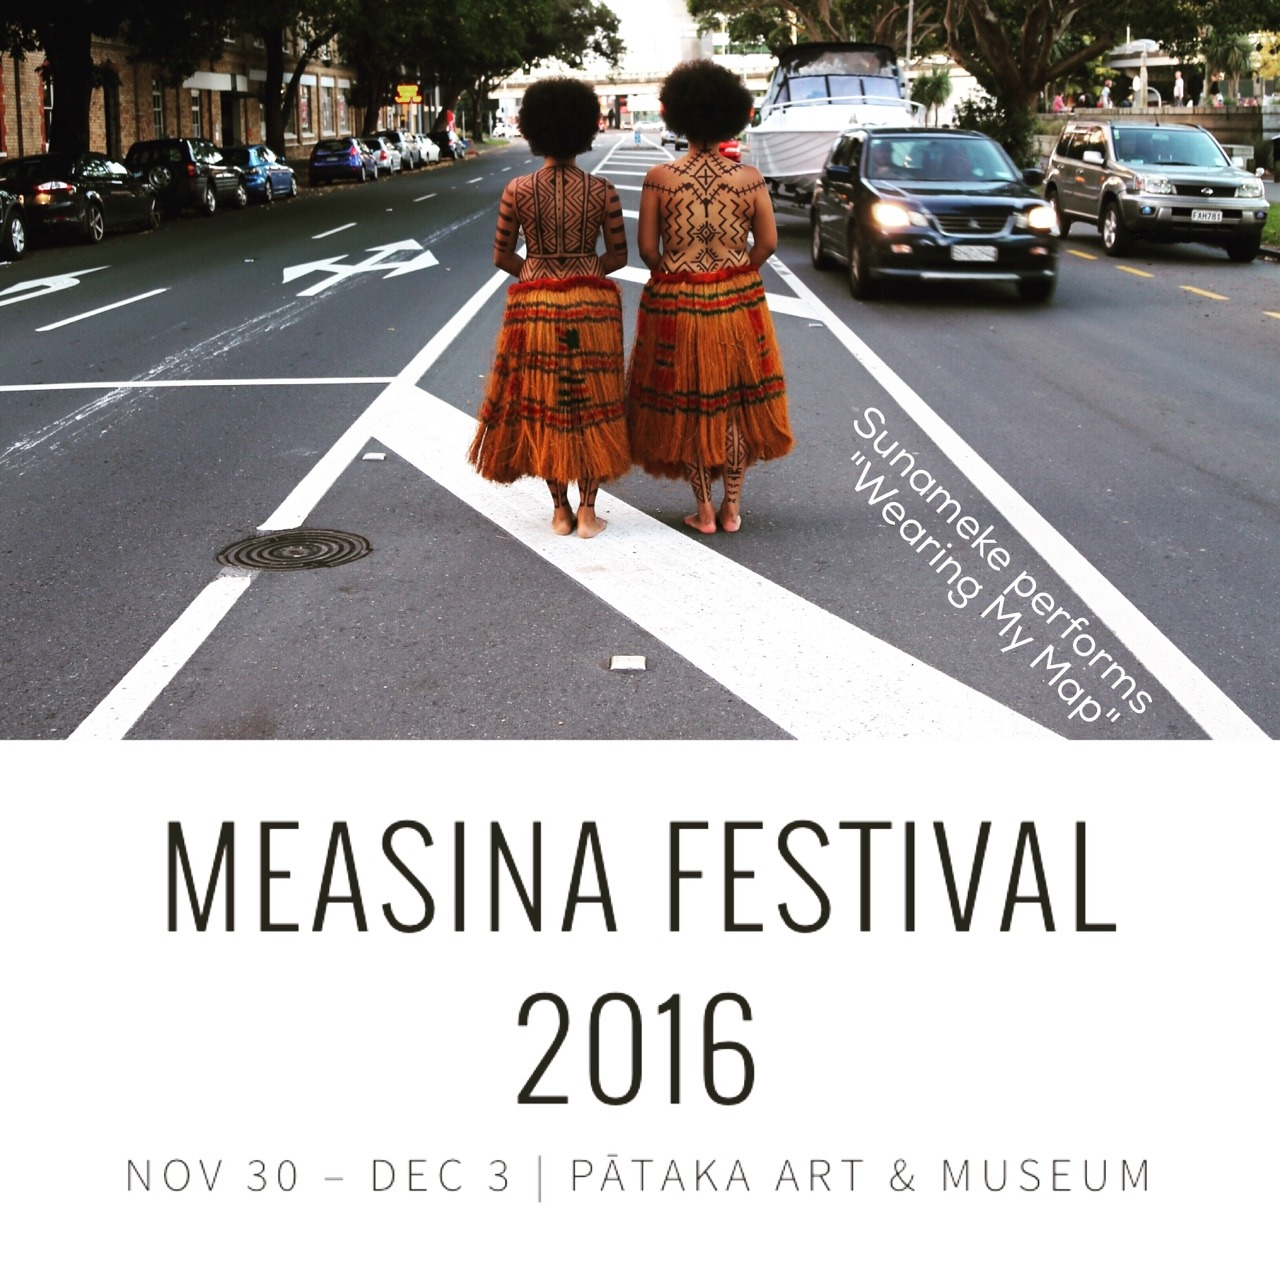 Sunameke performing 'Wearing My Map' at Measina Festival in Wellington ☝🏽️Check link https://measinafestival.org/whats-on/ #wearingmymap #sunameke #measina #excited #melanesia #polynesia #dance ; #wearingmymap #sunameke #measina #excited #melanesia...